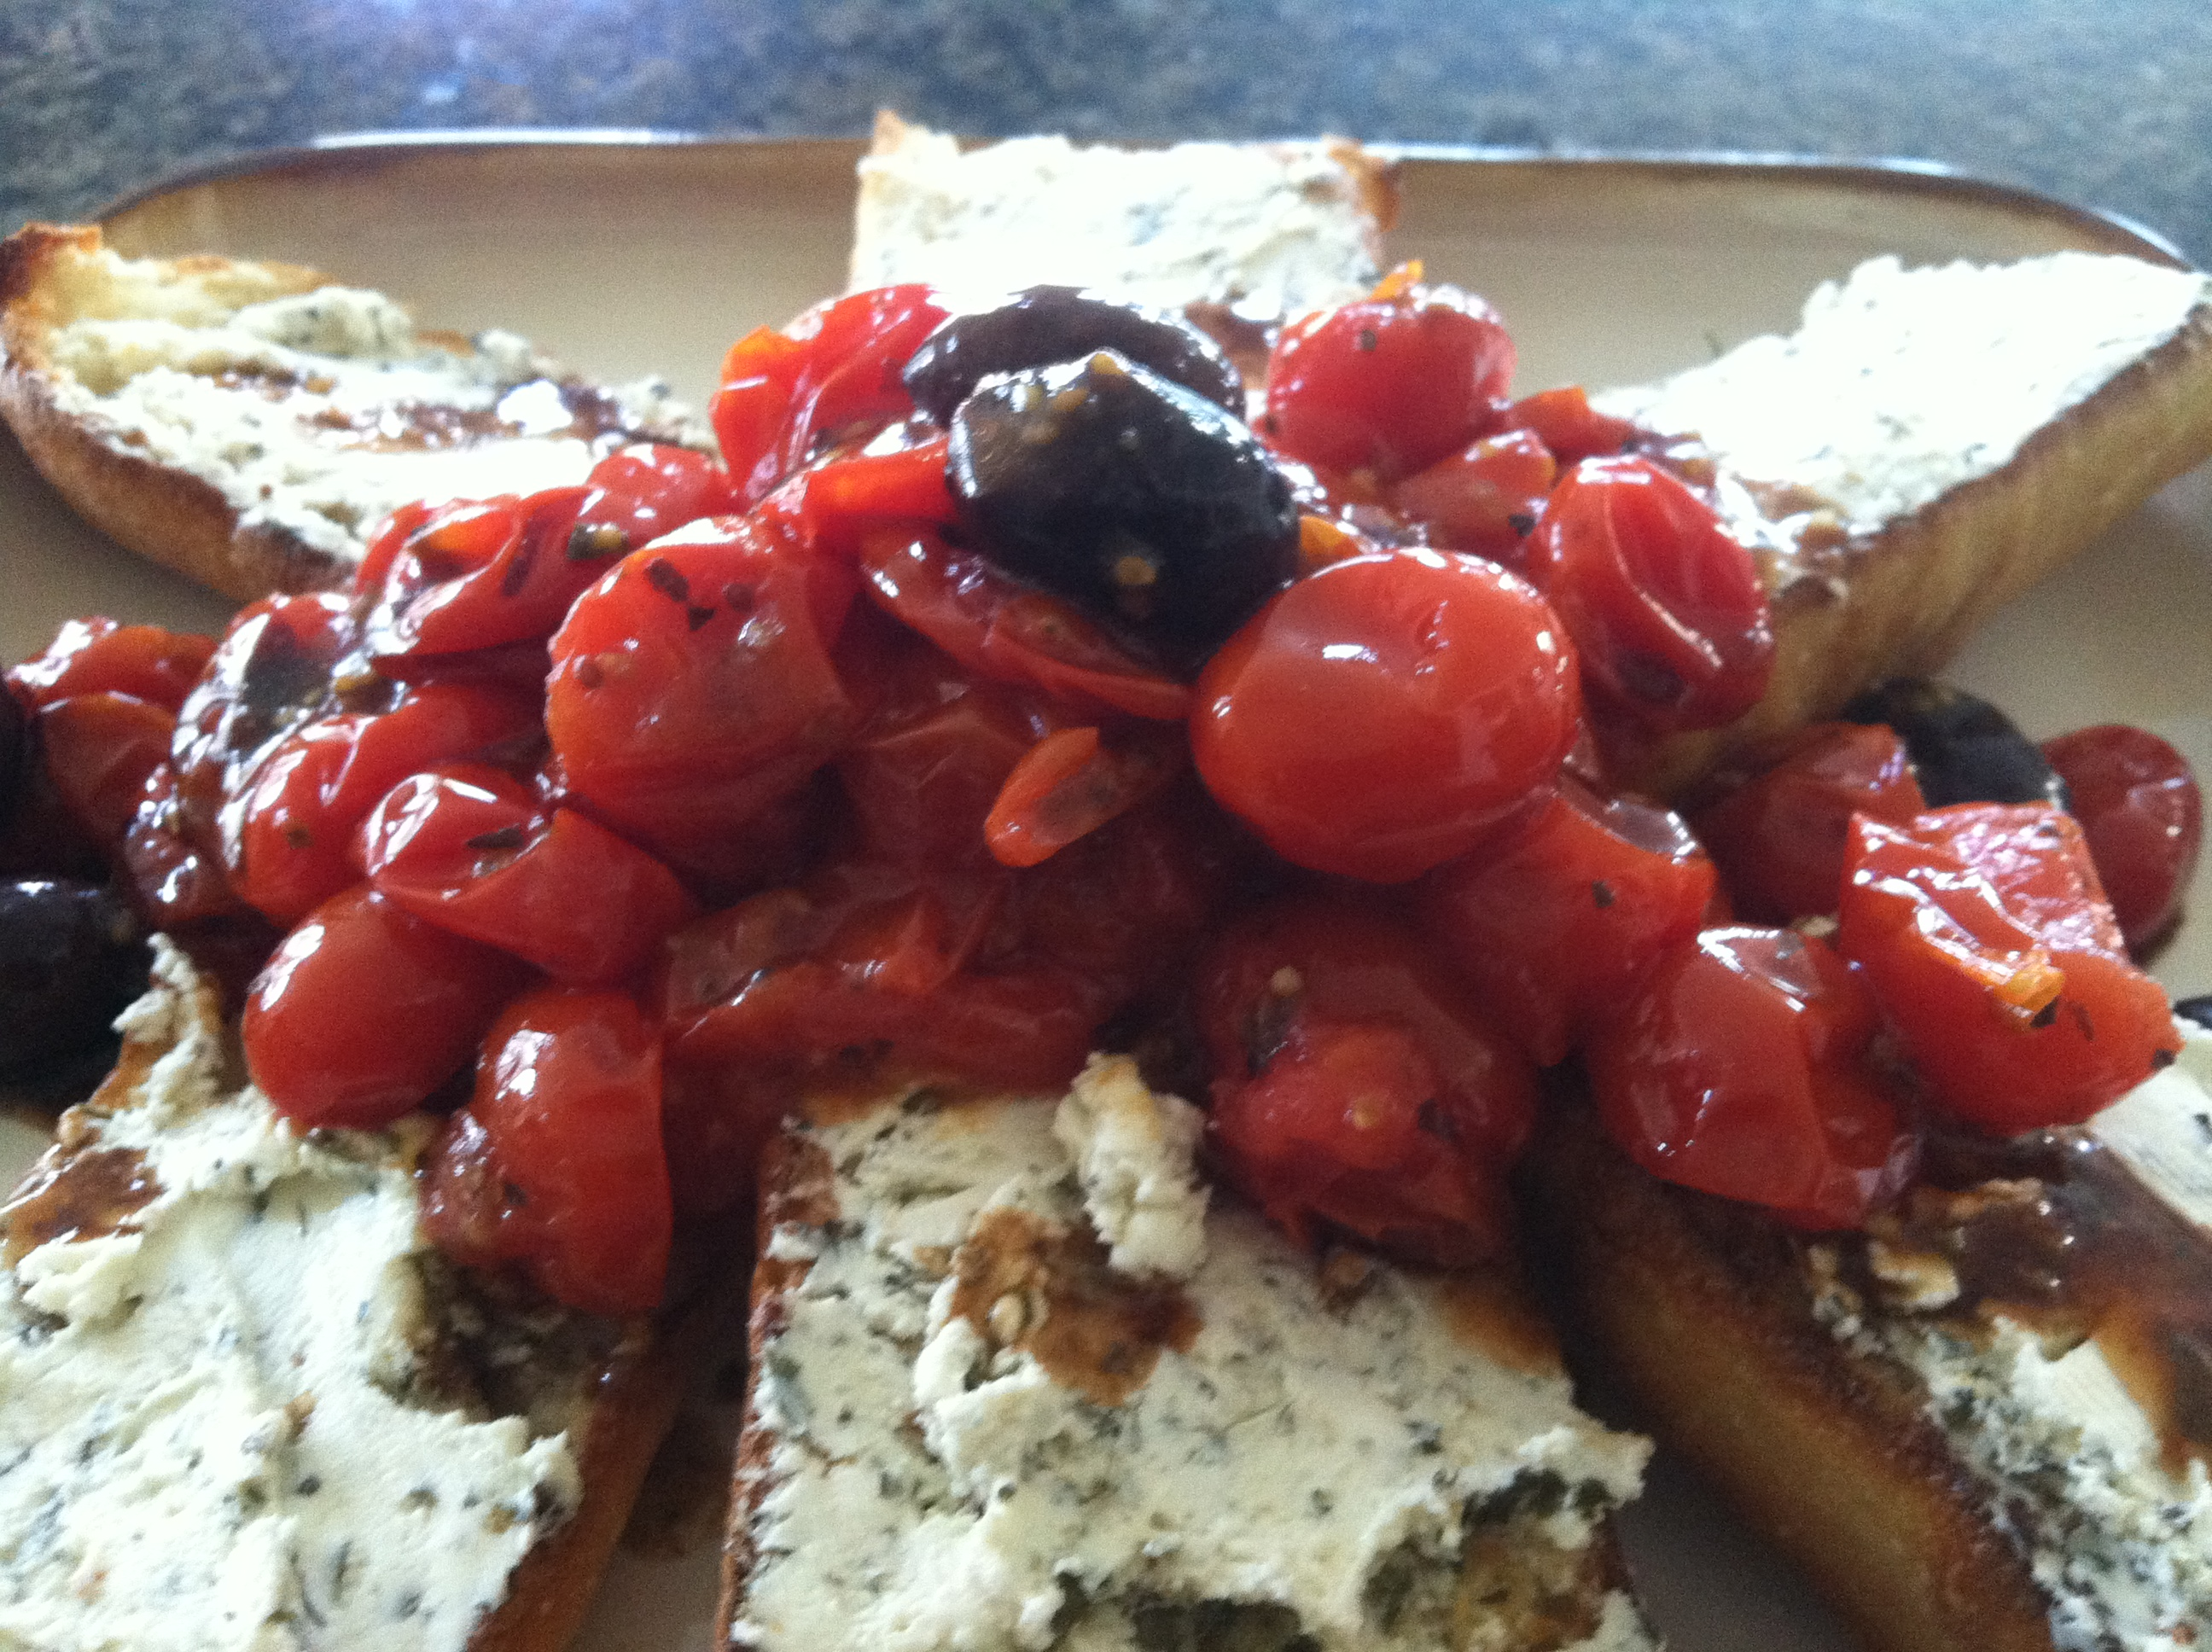 French Bread w/ Goat Cheese and Oven Roasted Tomatoes